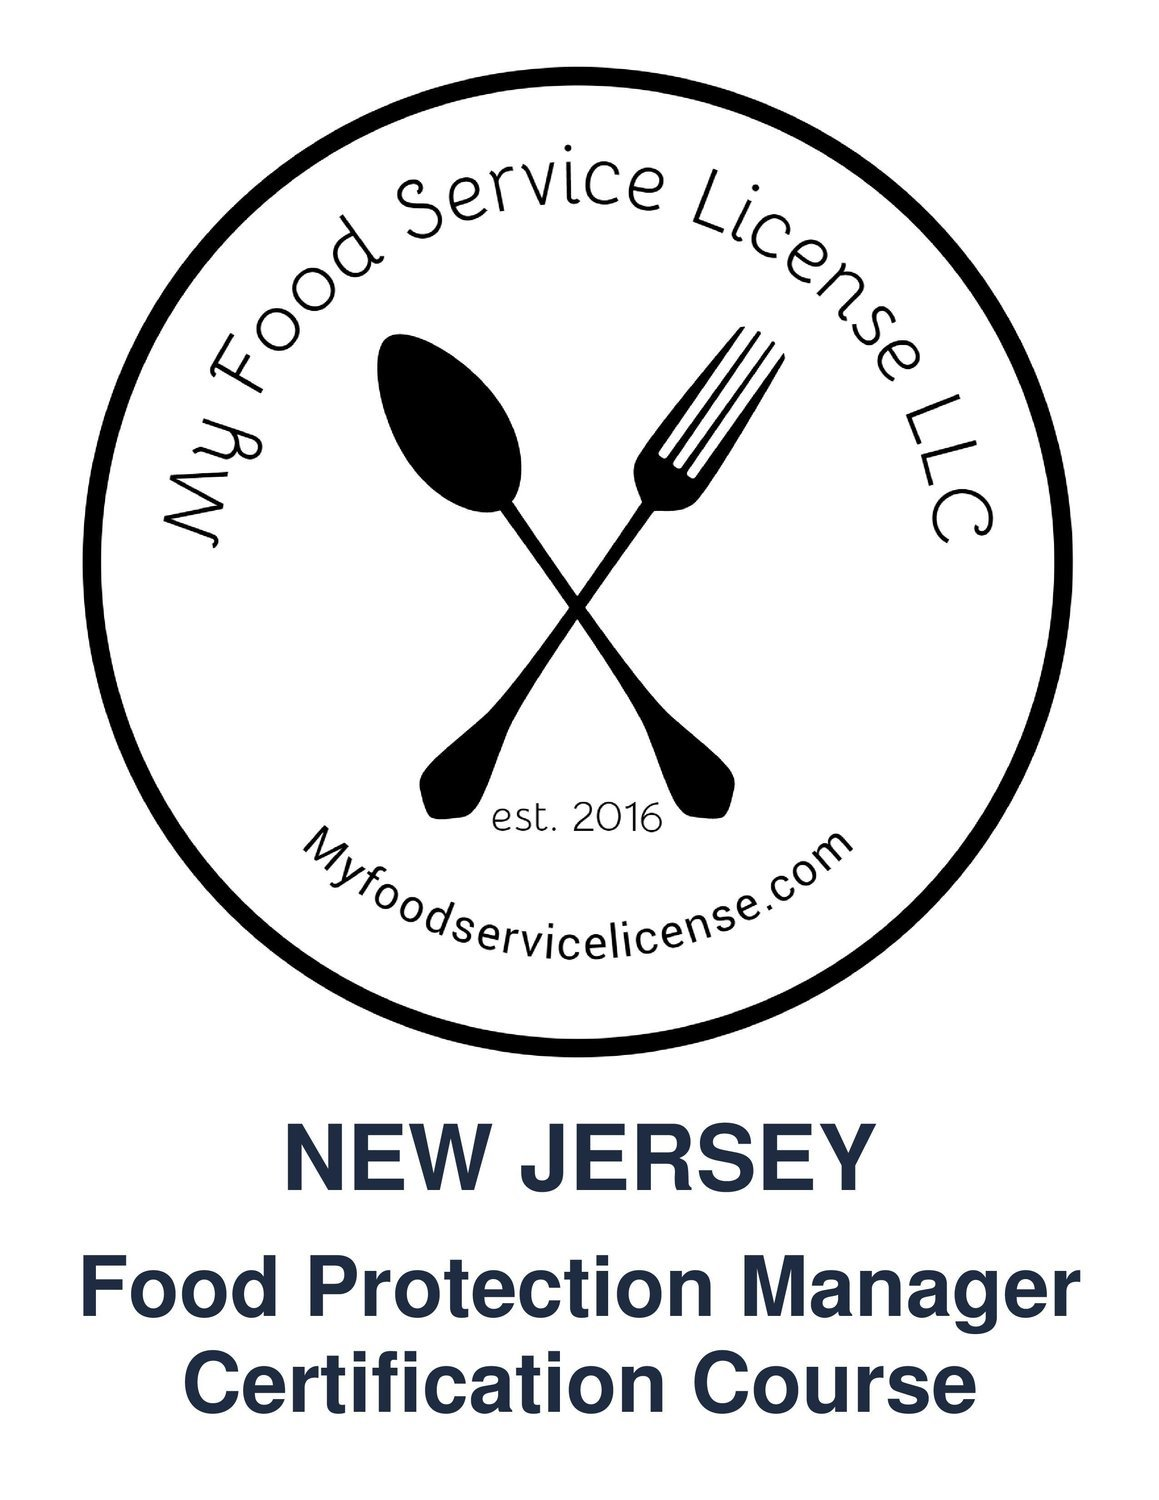 New Jersey Online Food Protection Manager Certification Course